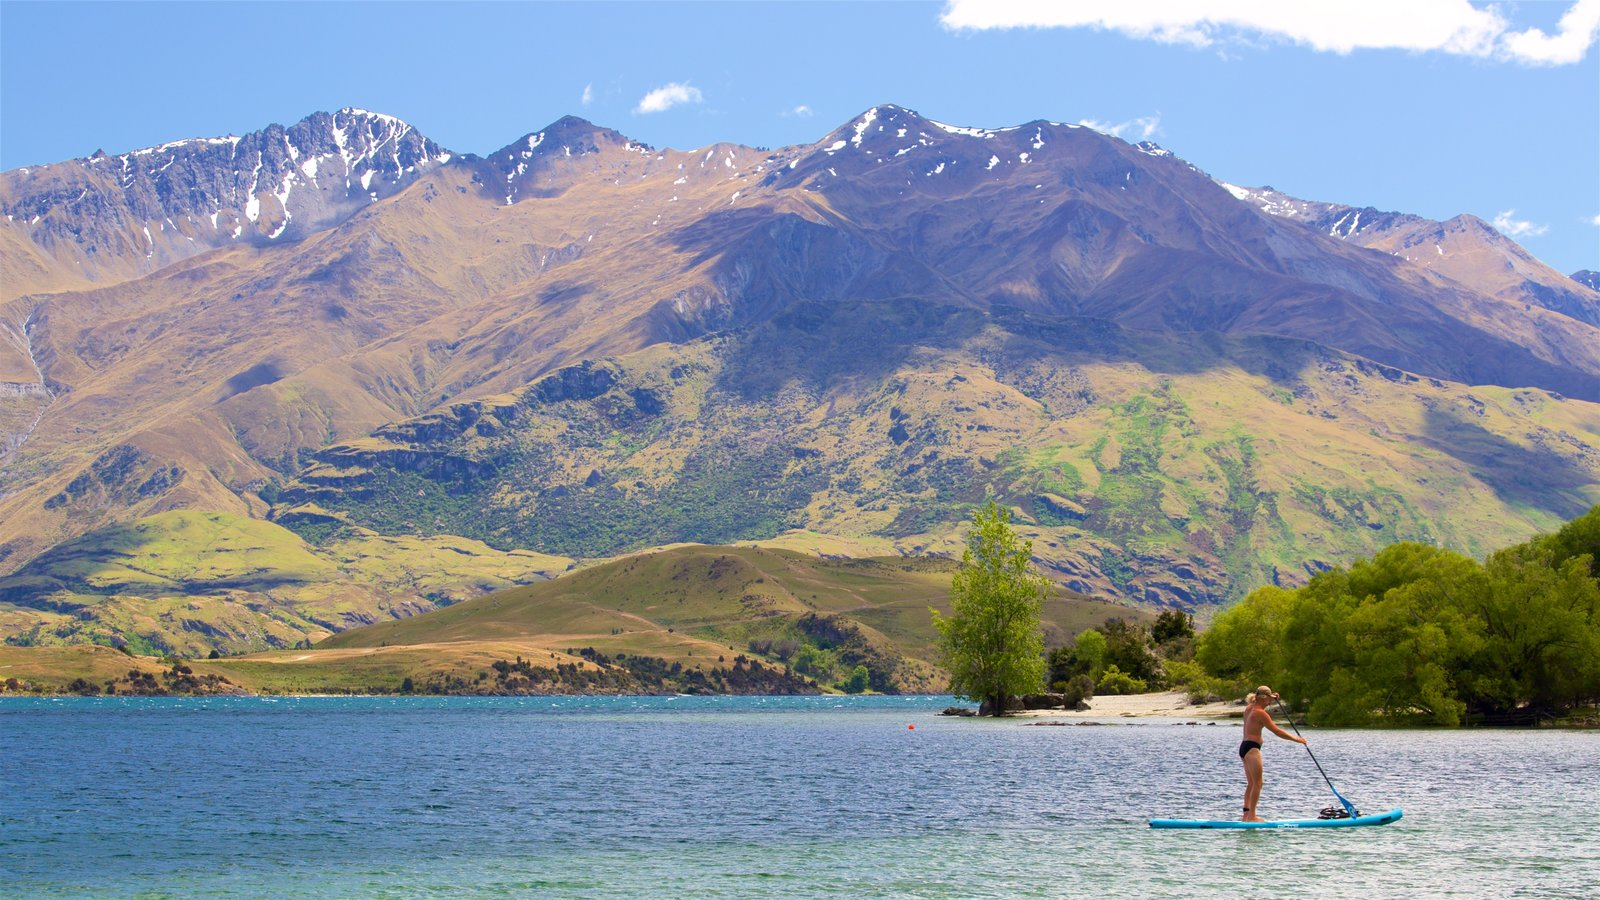 Wanaka which includes mountains, watersports and a lake or waterhole